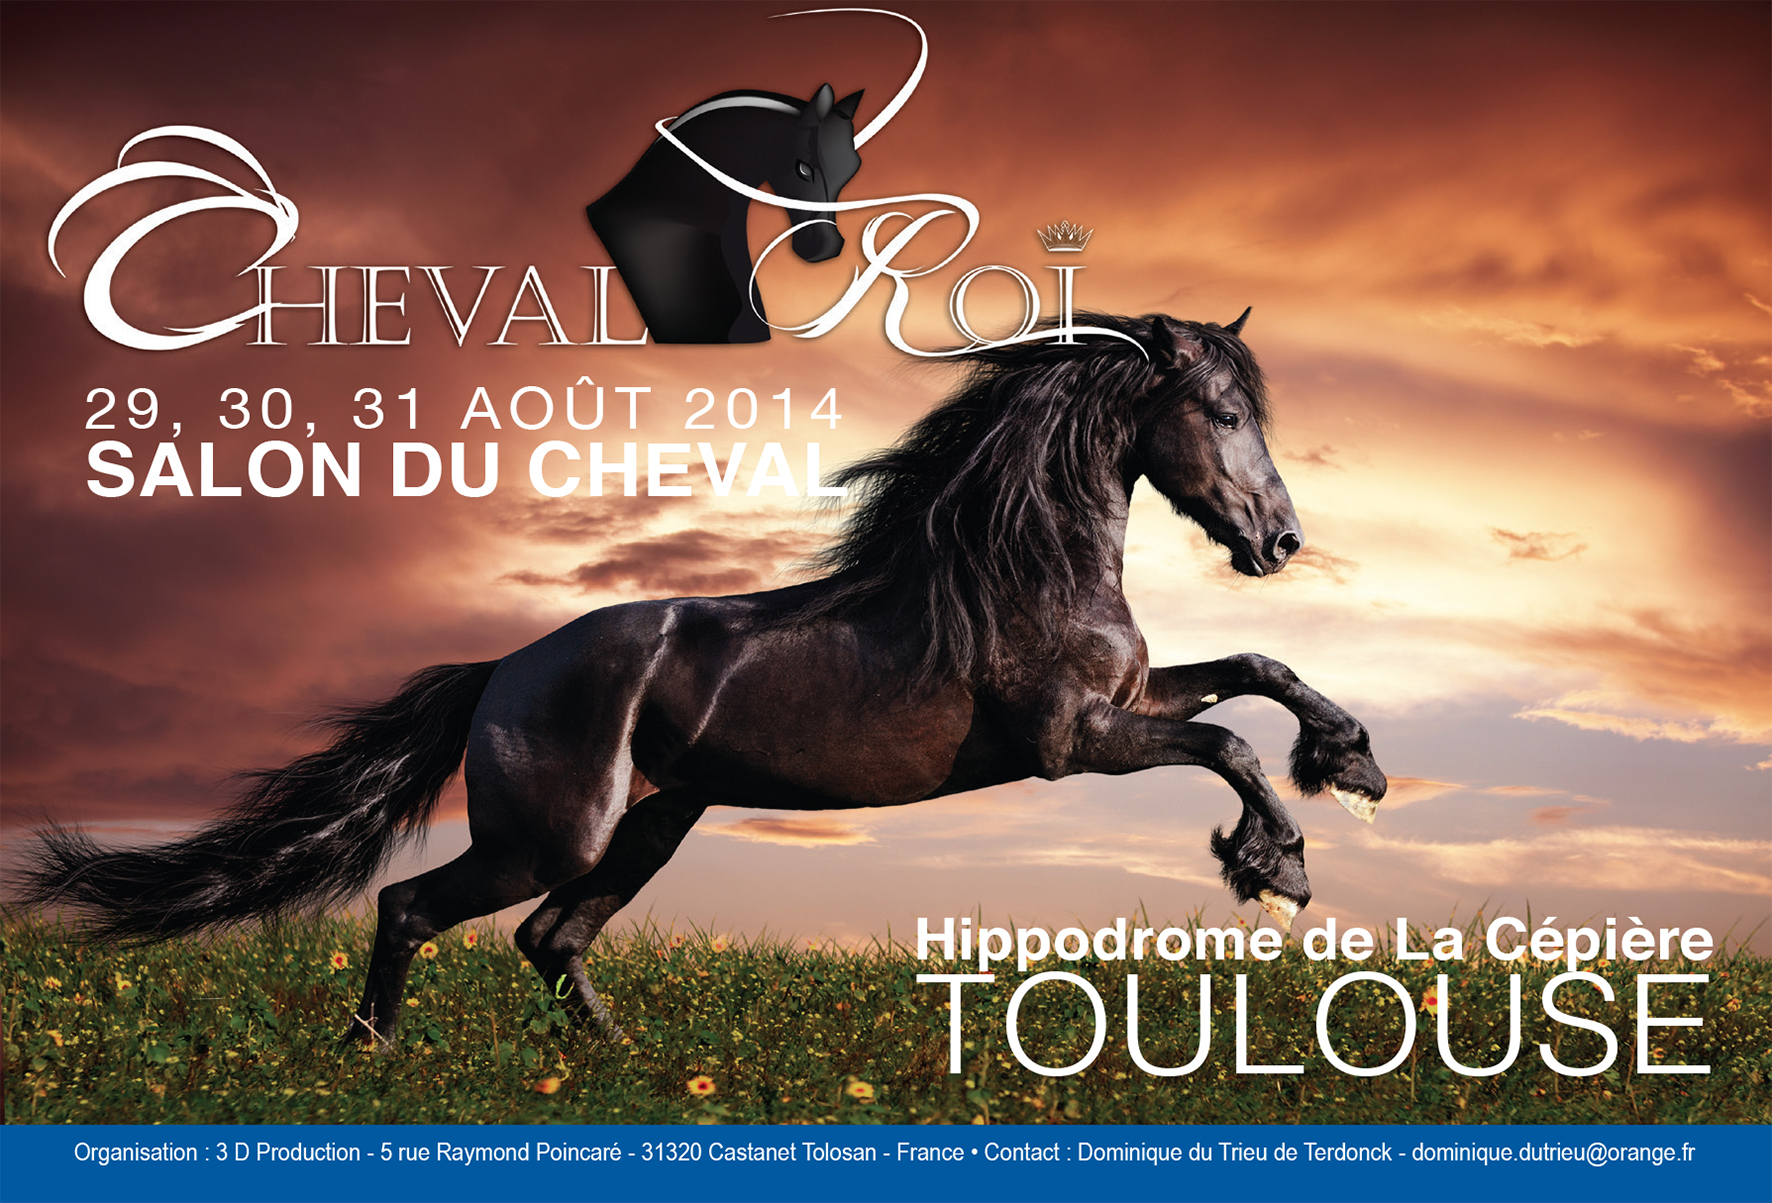 Salon du cheval cheval roi toulouse 31 du for Hippodrome de salon